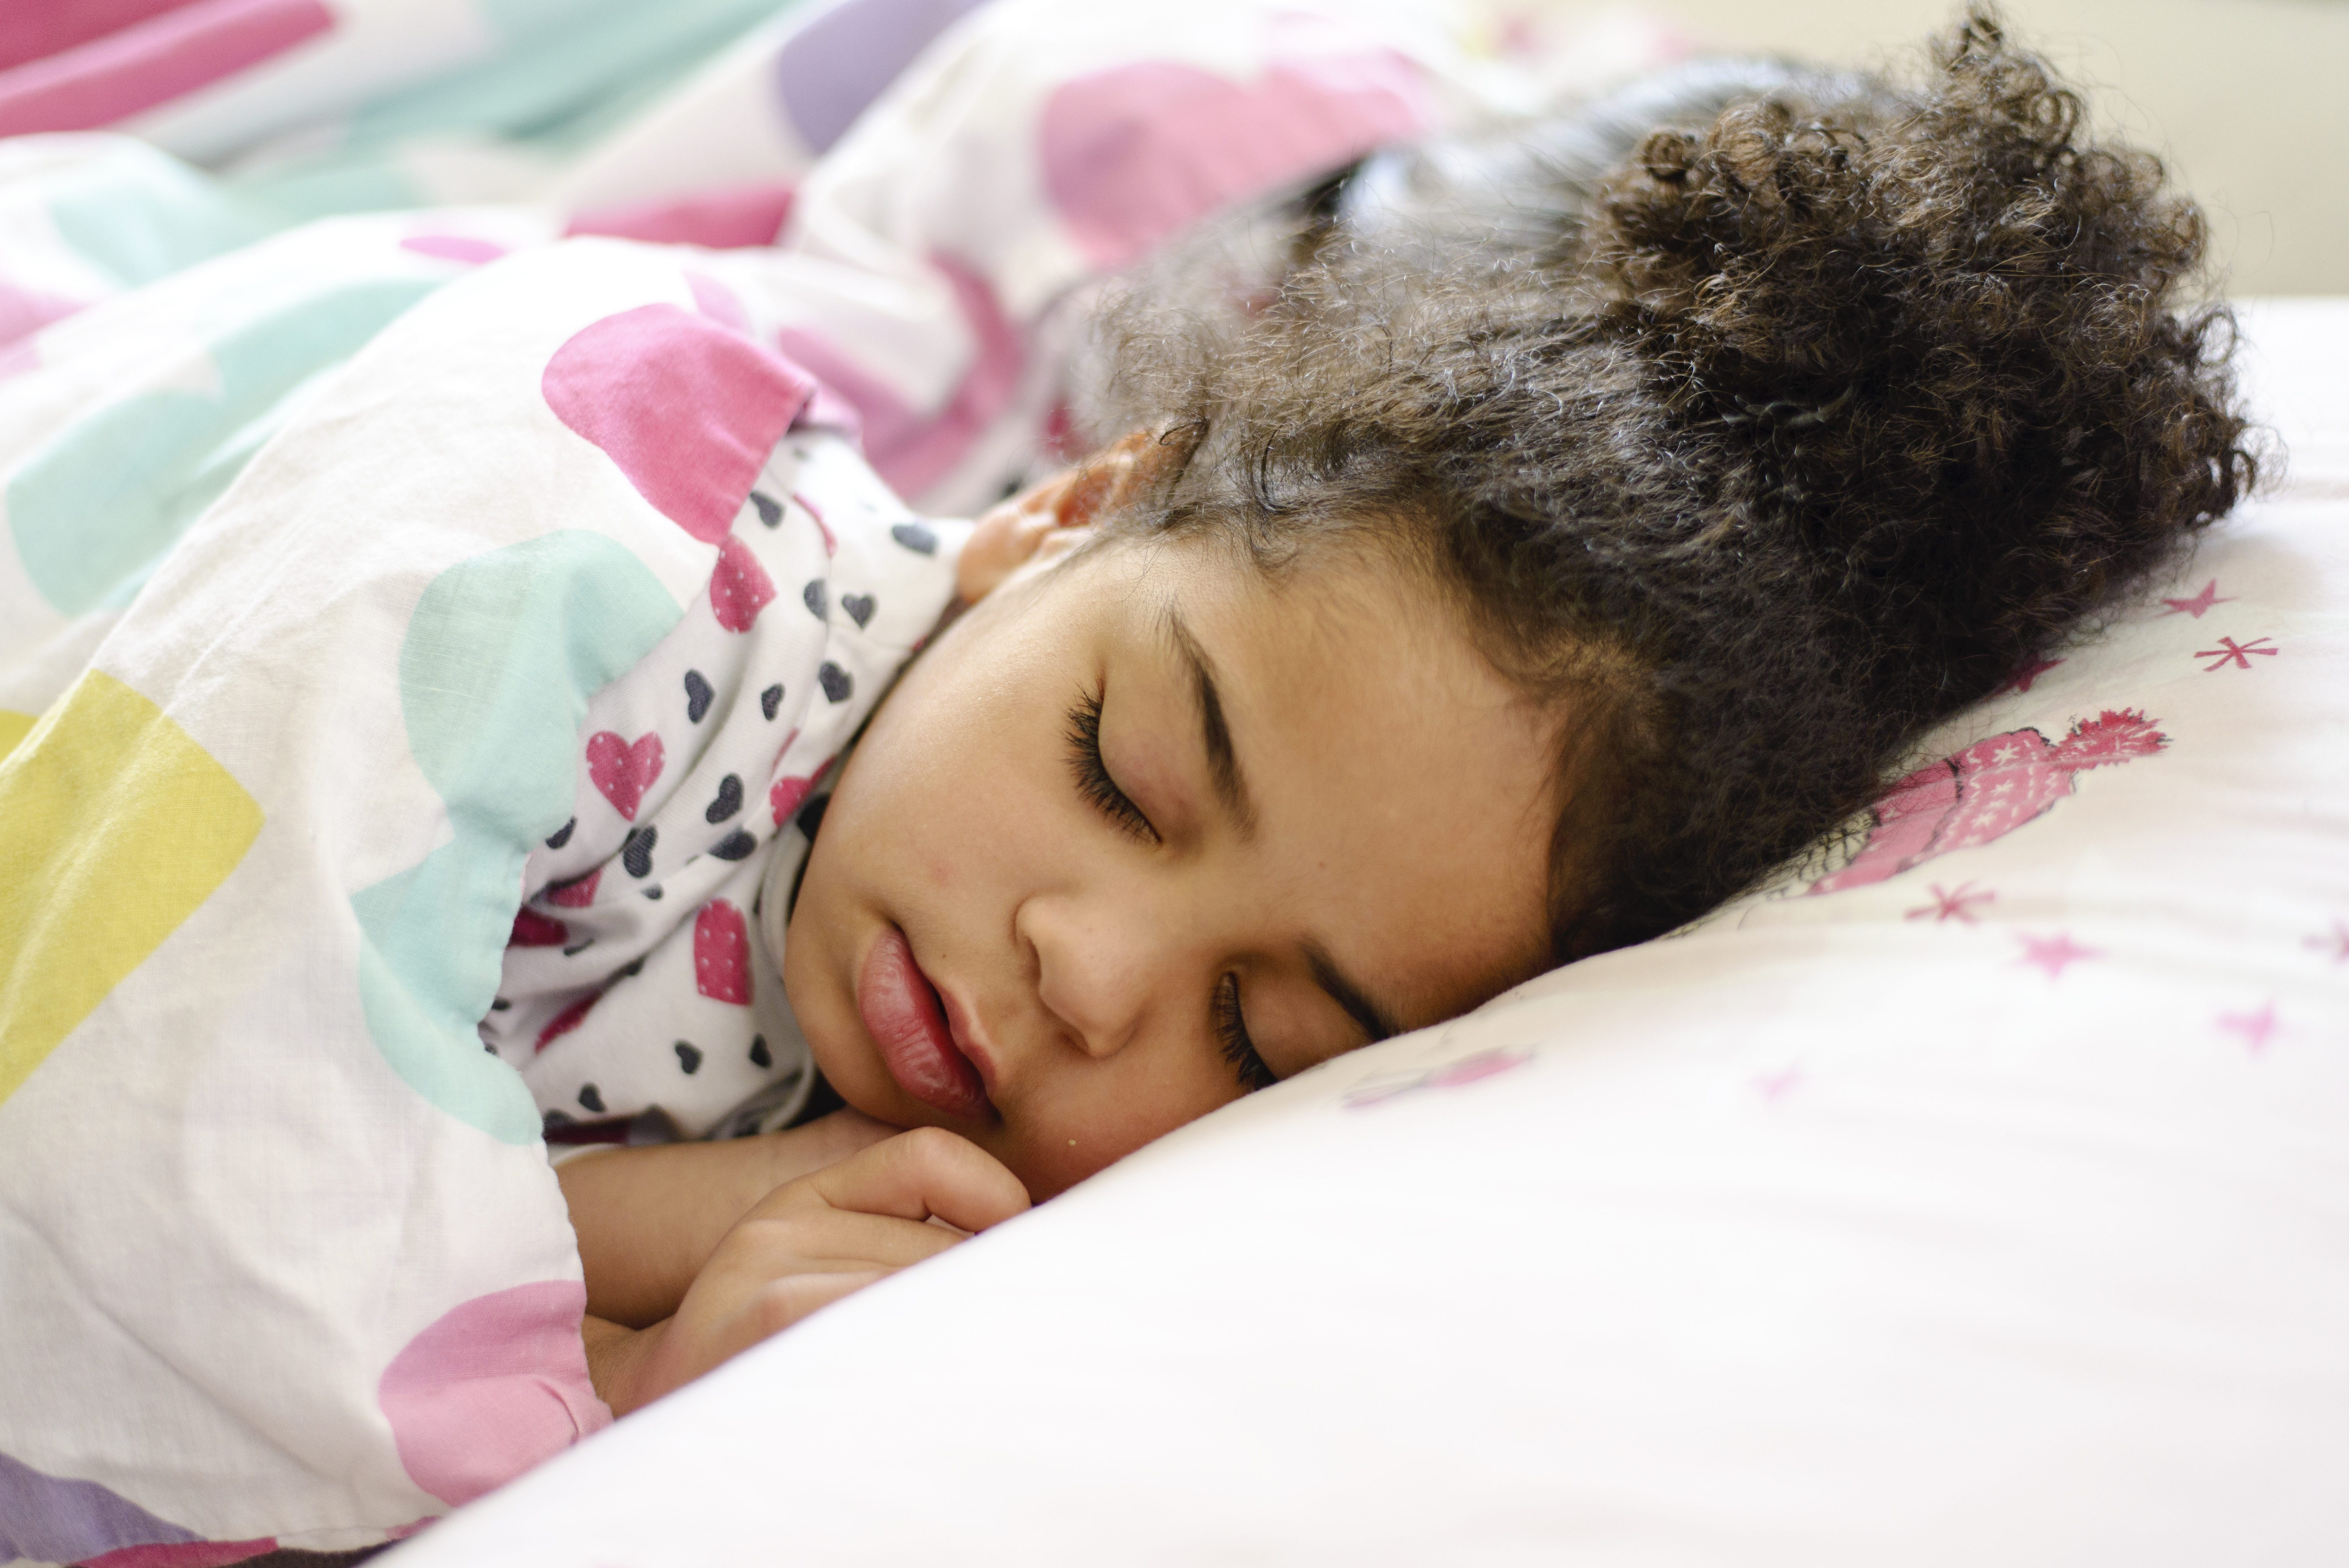 Staten Island Children's Museum: The Science of Sleep: Con Edison Second Saturday Science